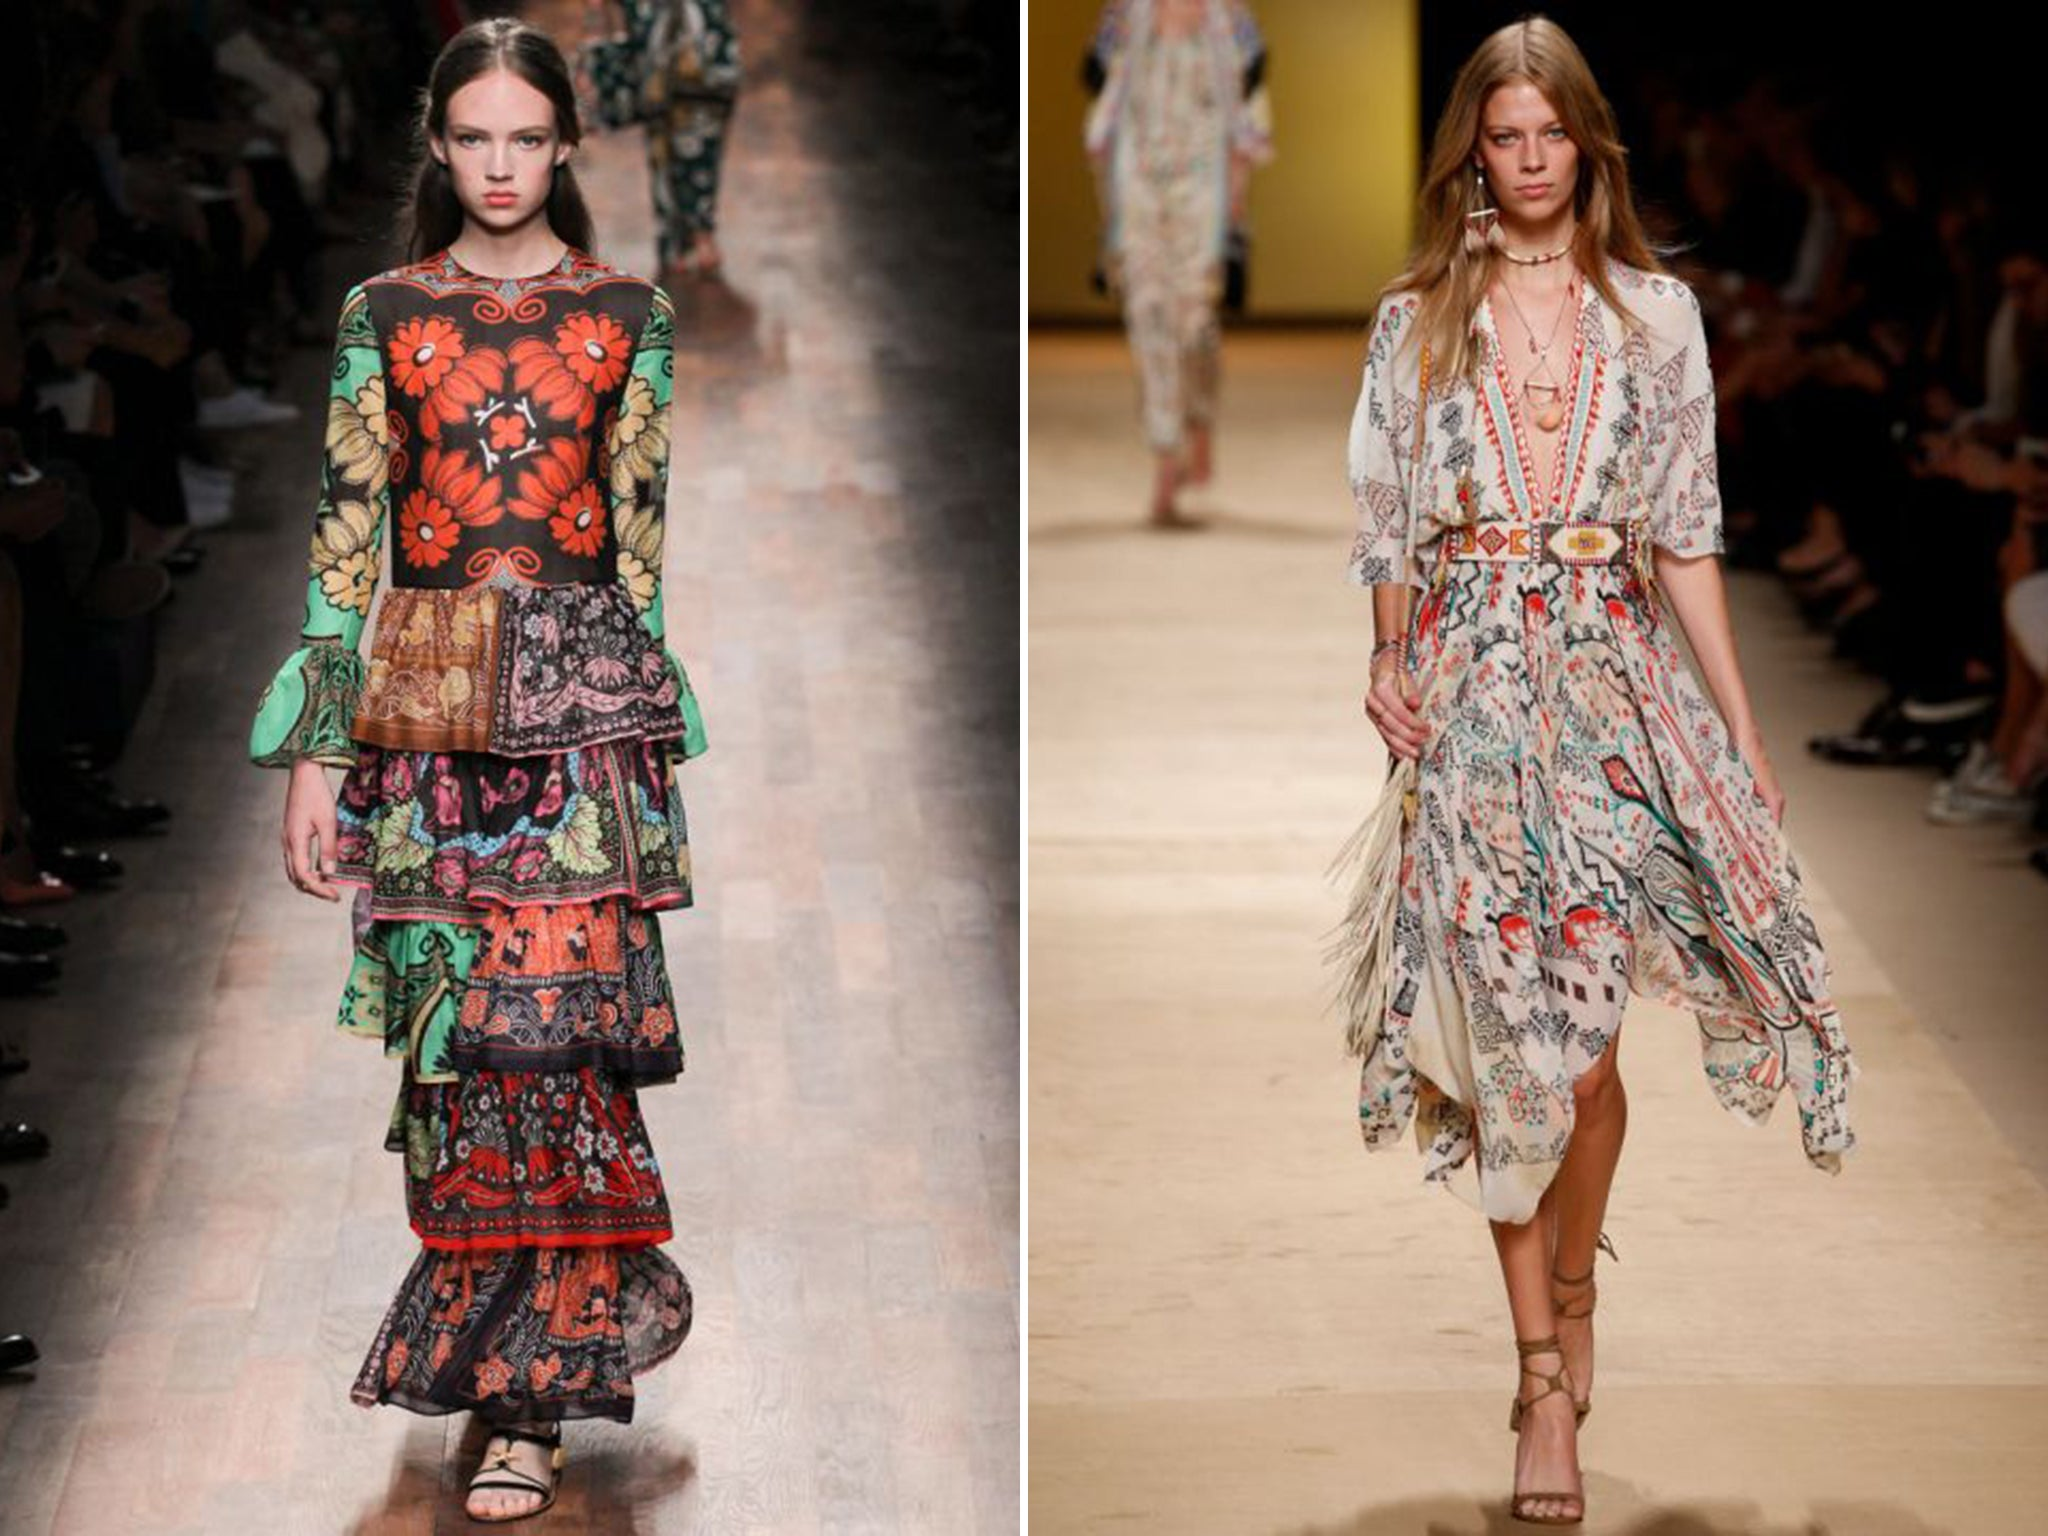 Pret A Porter Again A Flamboyant Designer From The Seventies Has A New Following The Independent